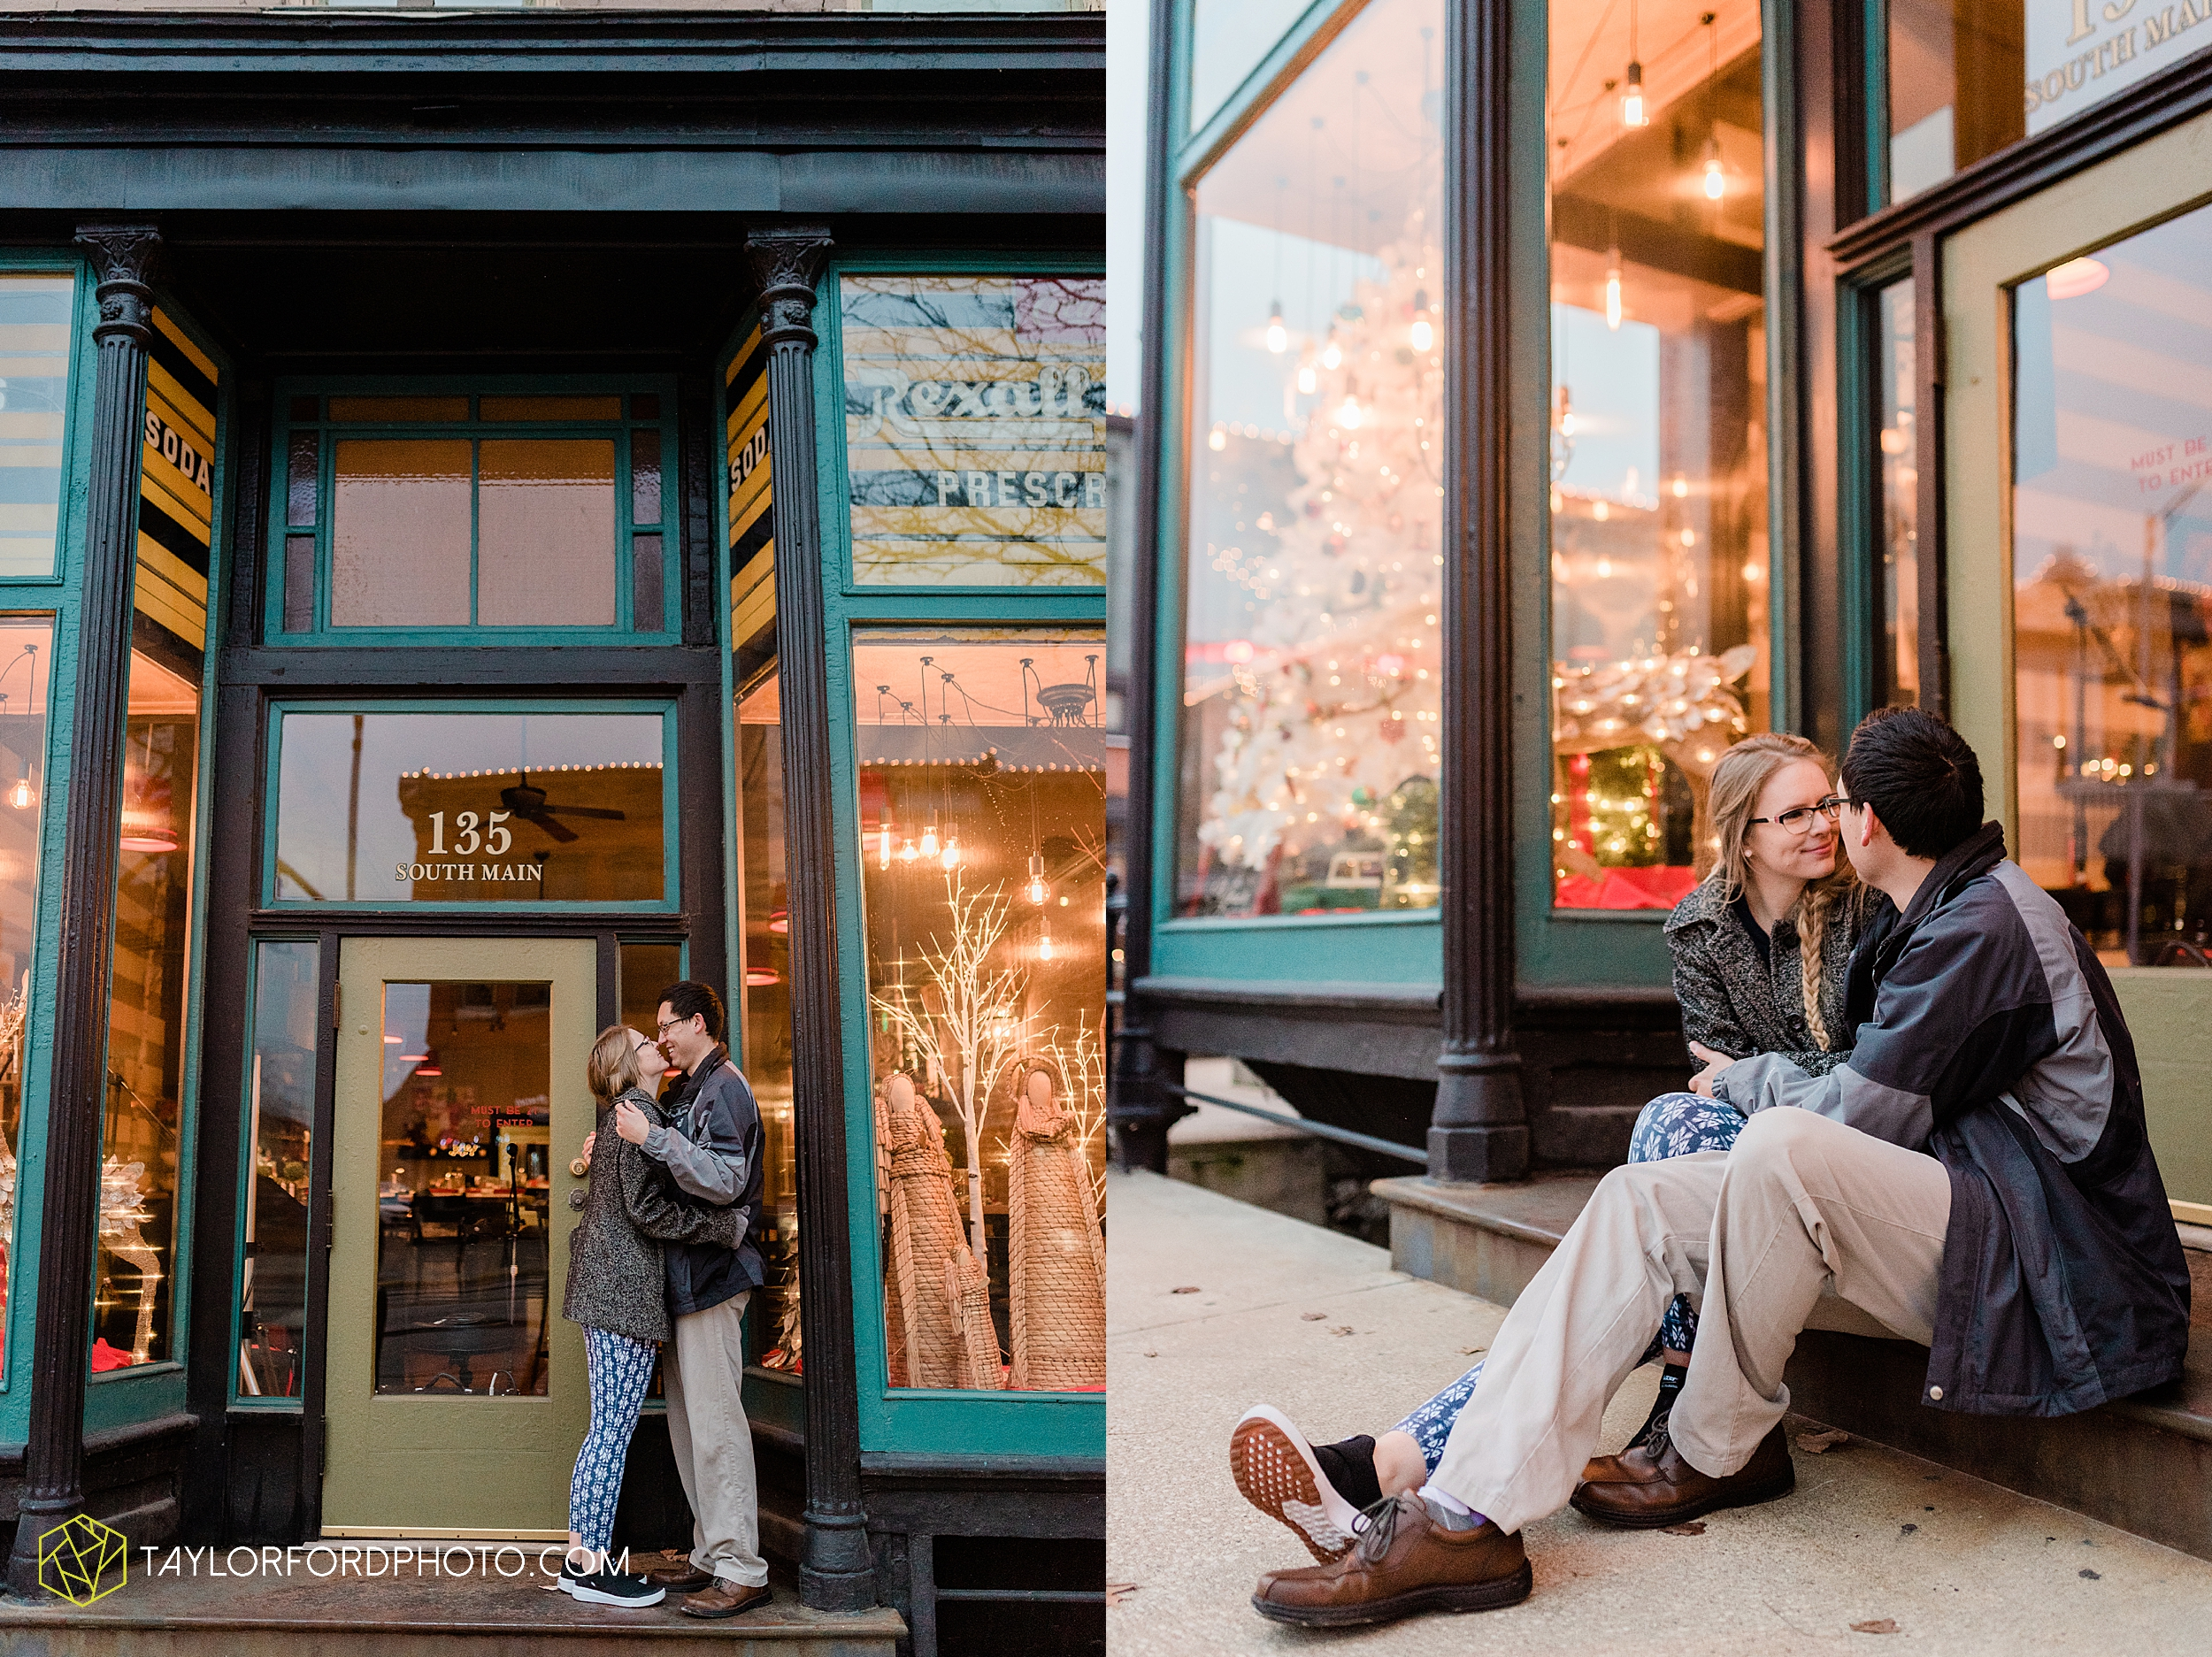 at-home-fidler-pond-park-downtown-goshen-indiana-engagement-photography-taylor-ford-hirschy-photographer_2007.jpg